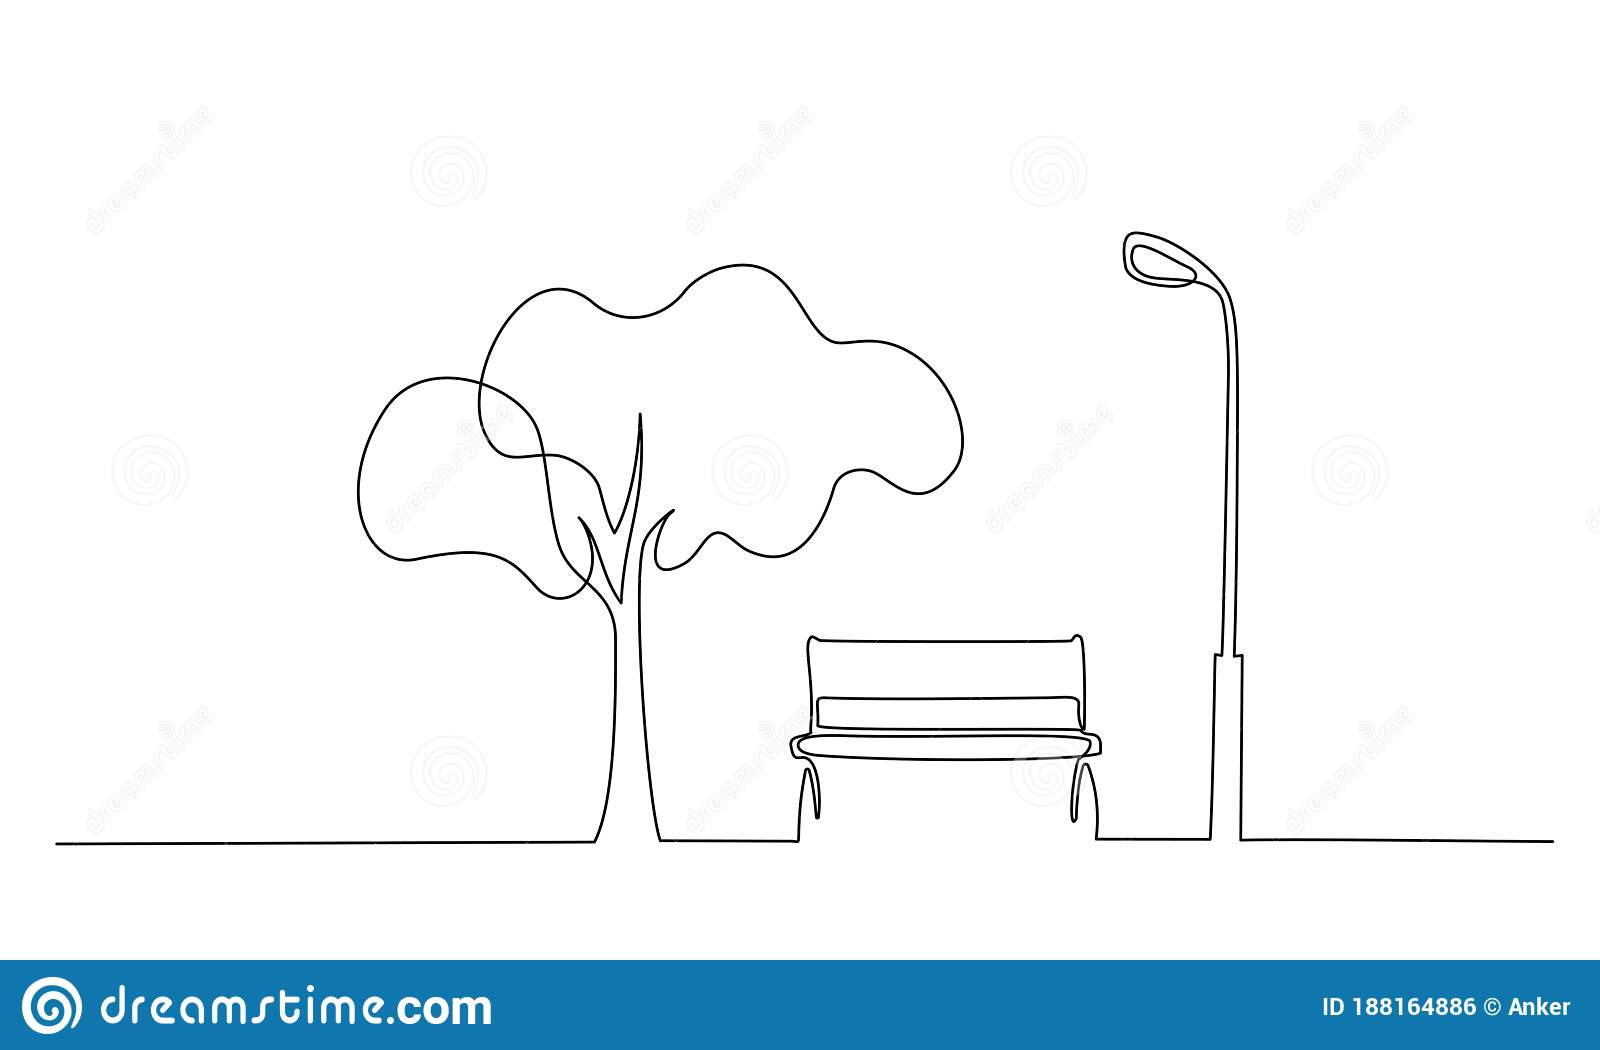 Park Bench Drawing Stock Illustrations 2 186 Park Bench Drawing Stock Illustrations Vectors Clipart Dreamstime